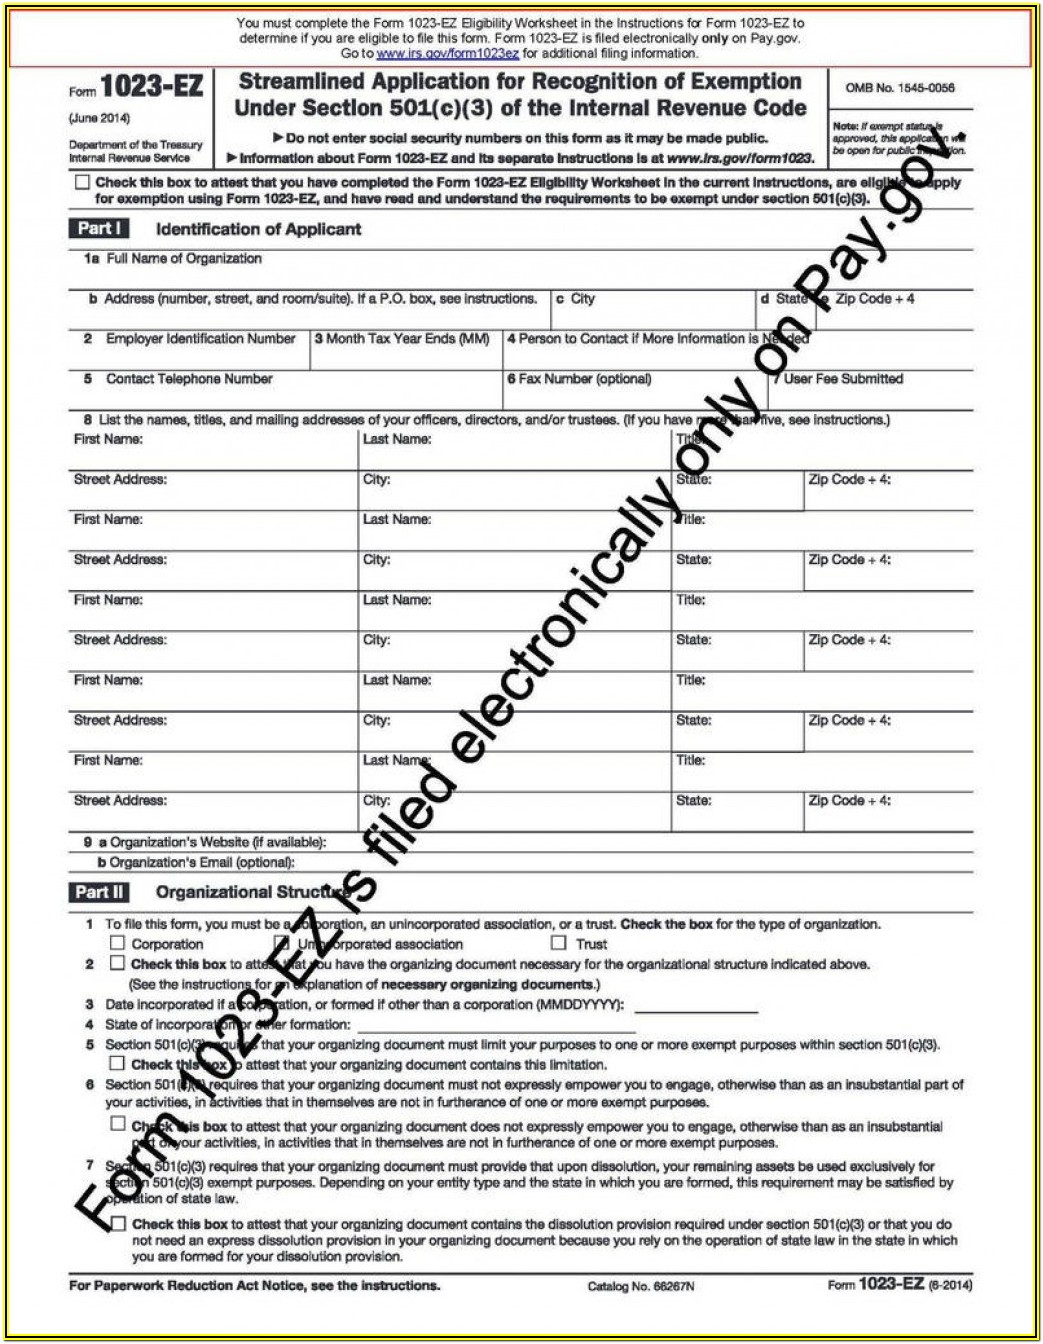 Form 990 Filings Search